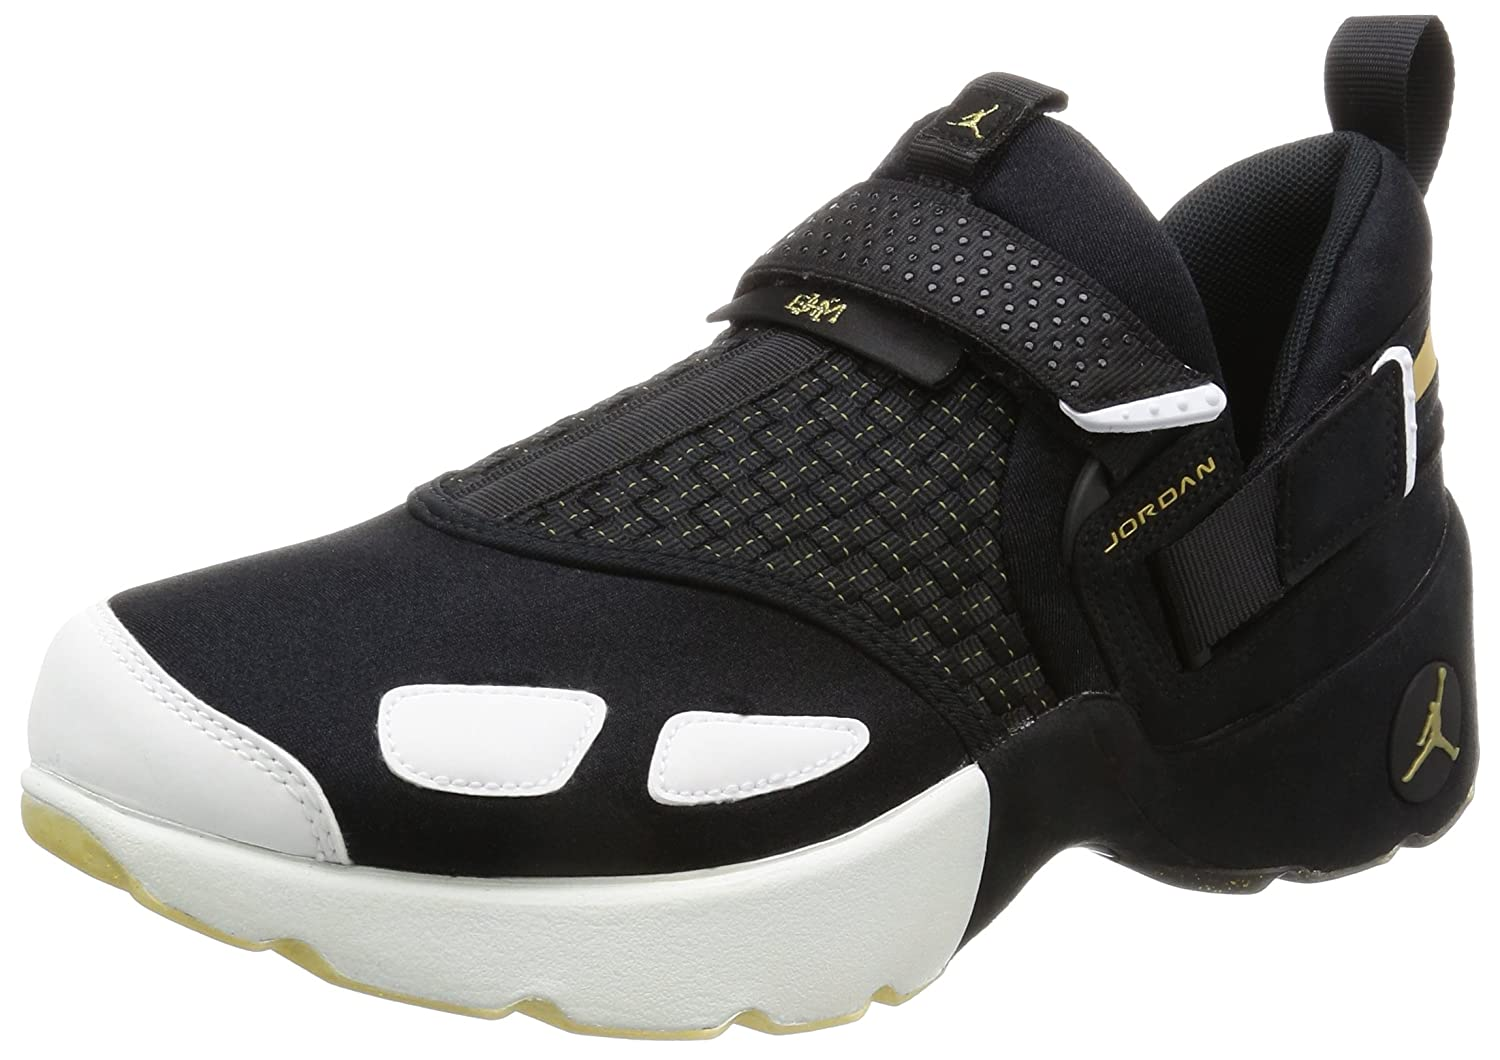 Noir Metallic or-blanc Jordan Trunner LX Mens 41.5 EU